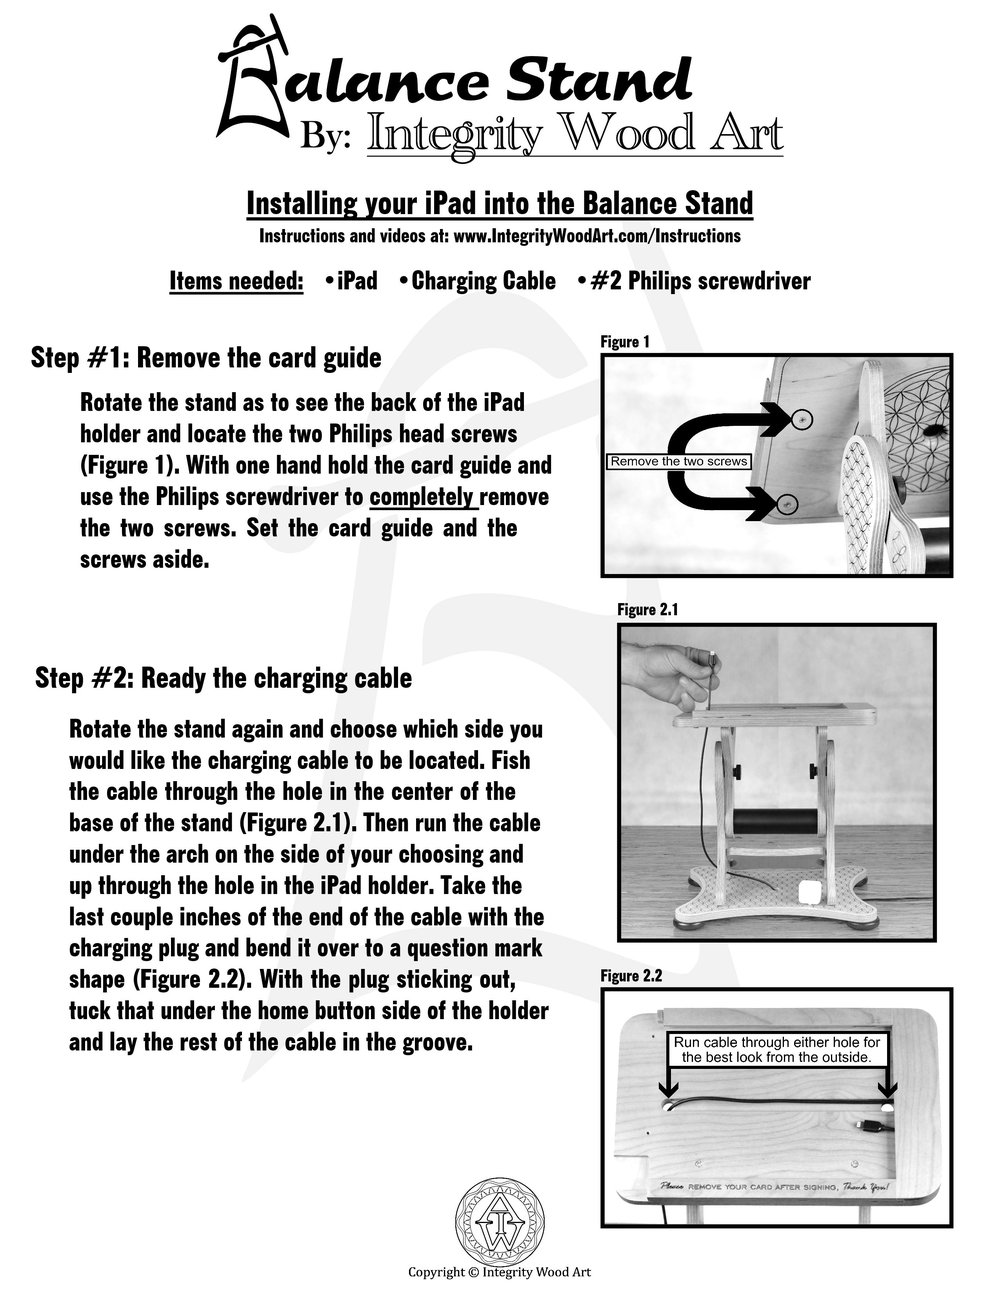 Balance stand instructions v.2 page 1.jpg